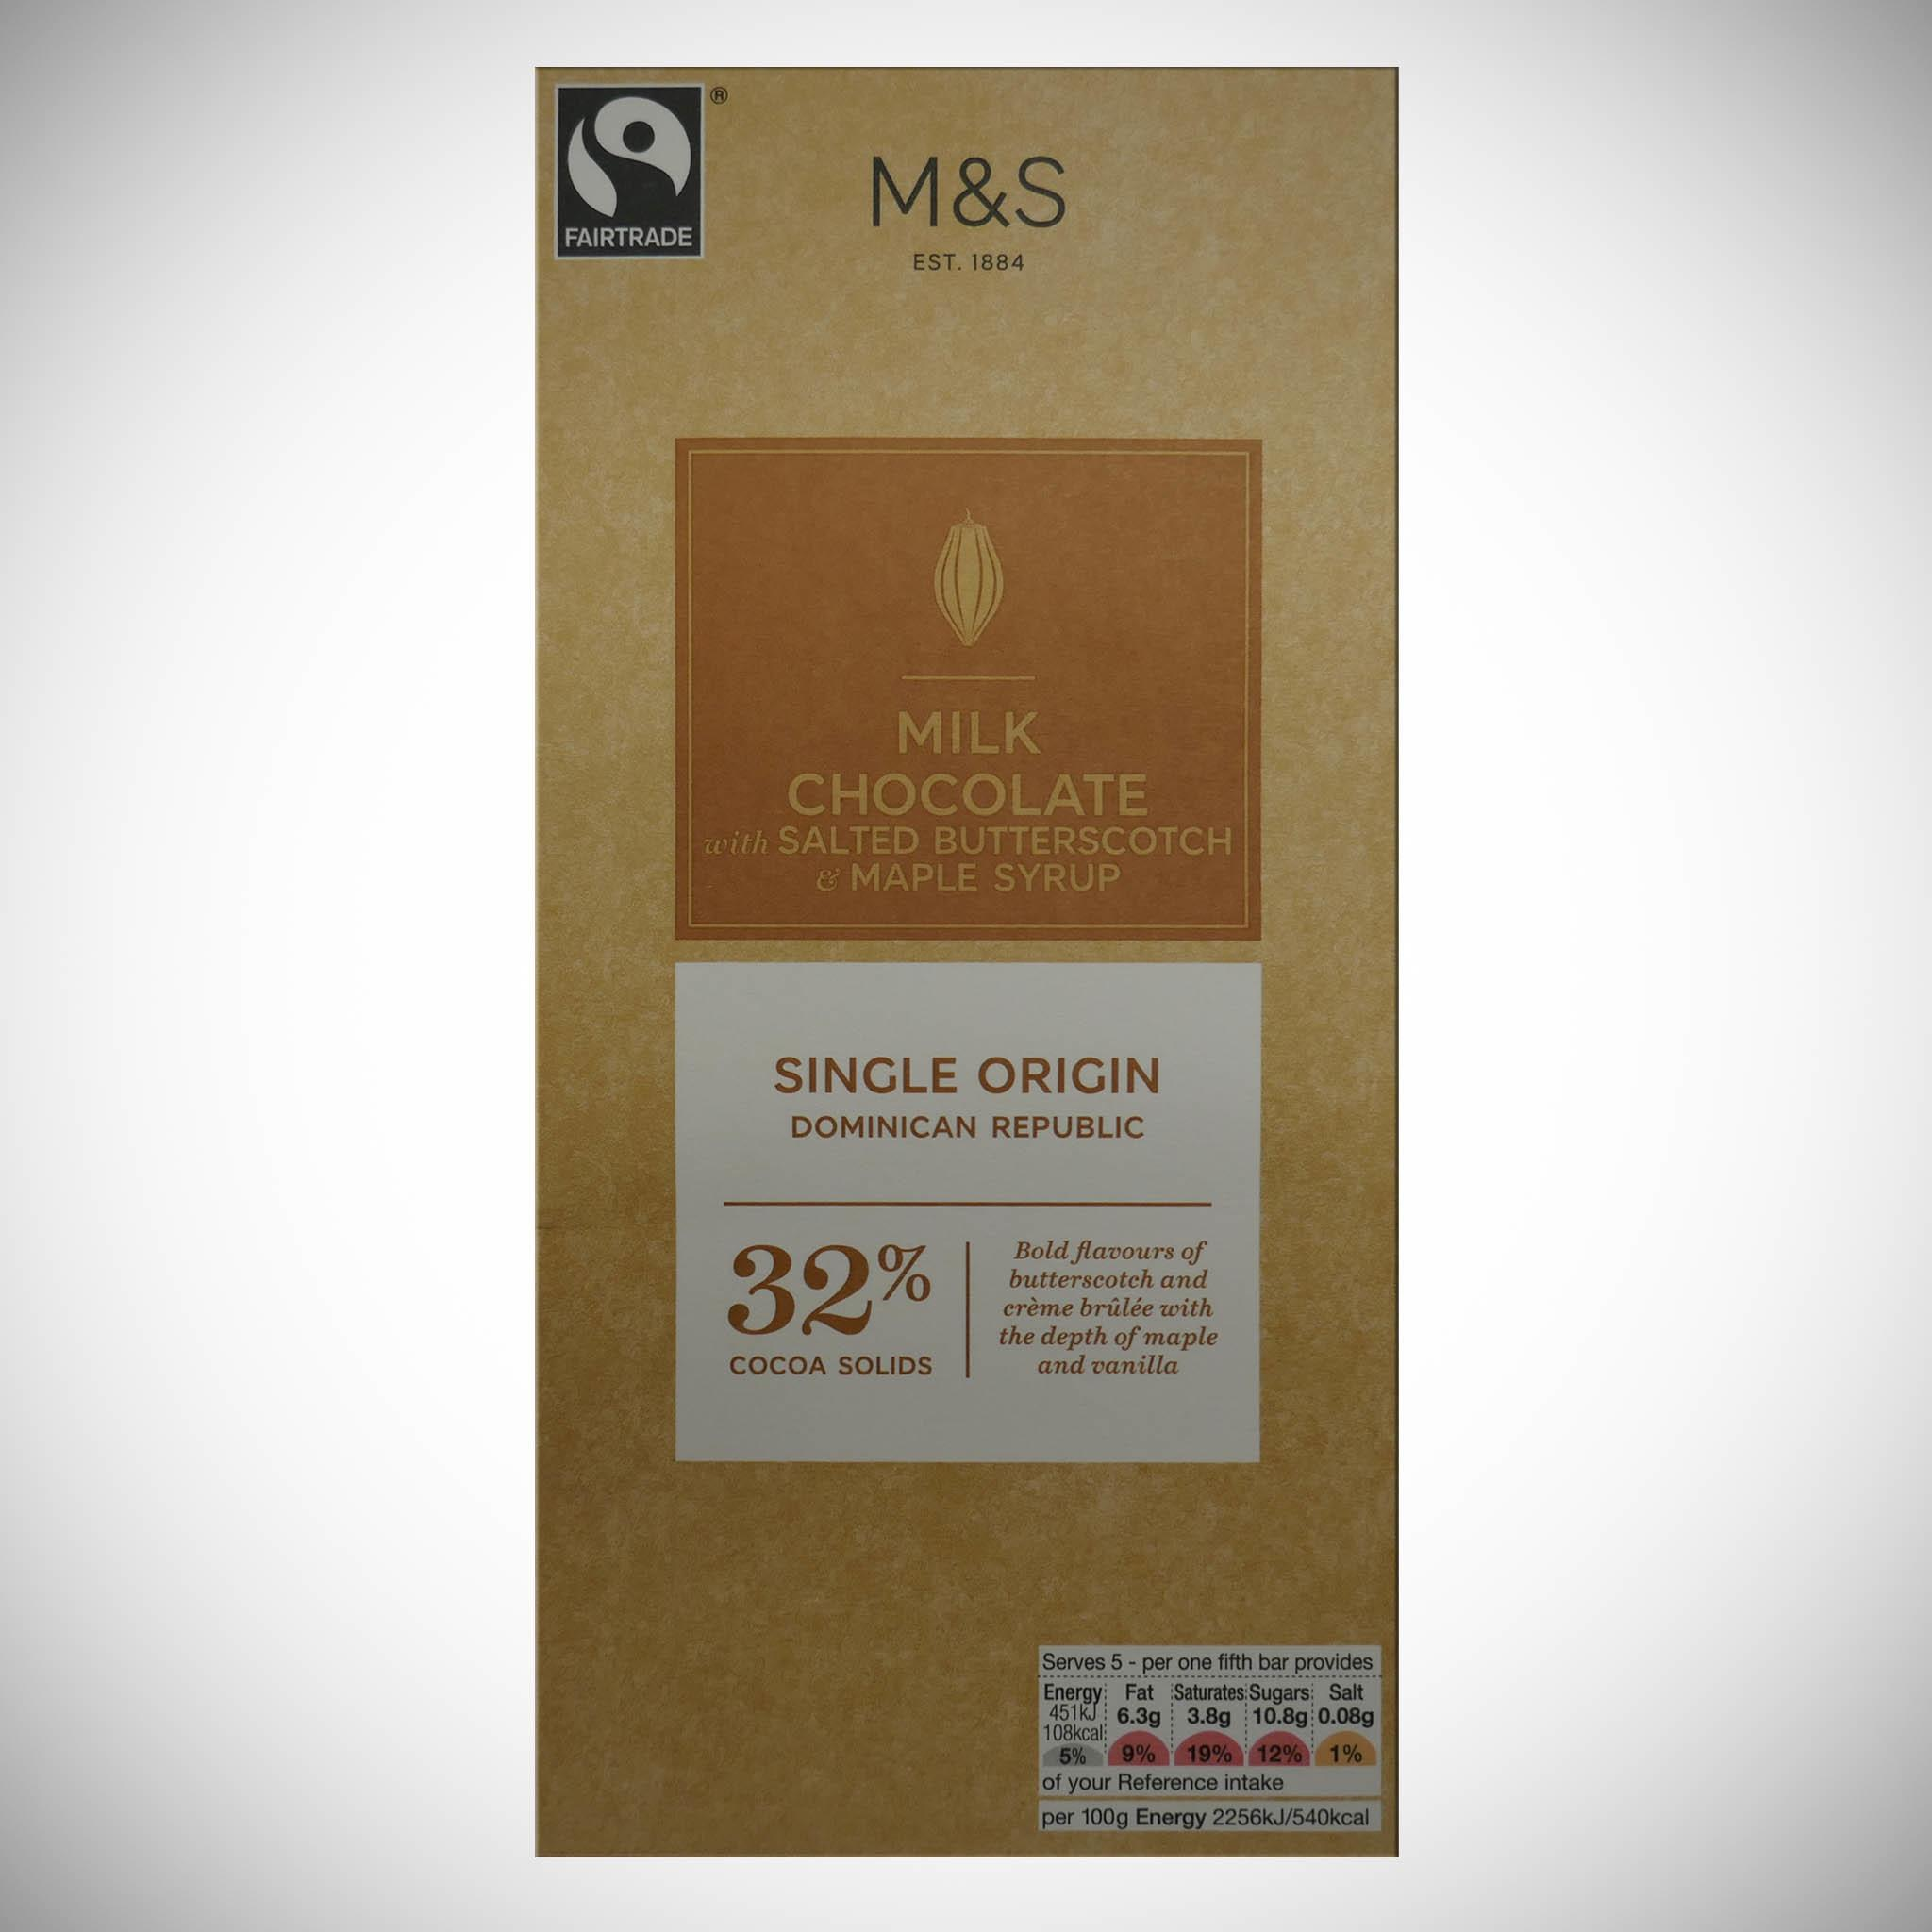 Milk Chocolate with Salted Butterscotch & Maple Syrup 100g